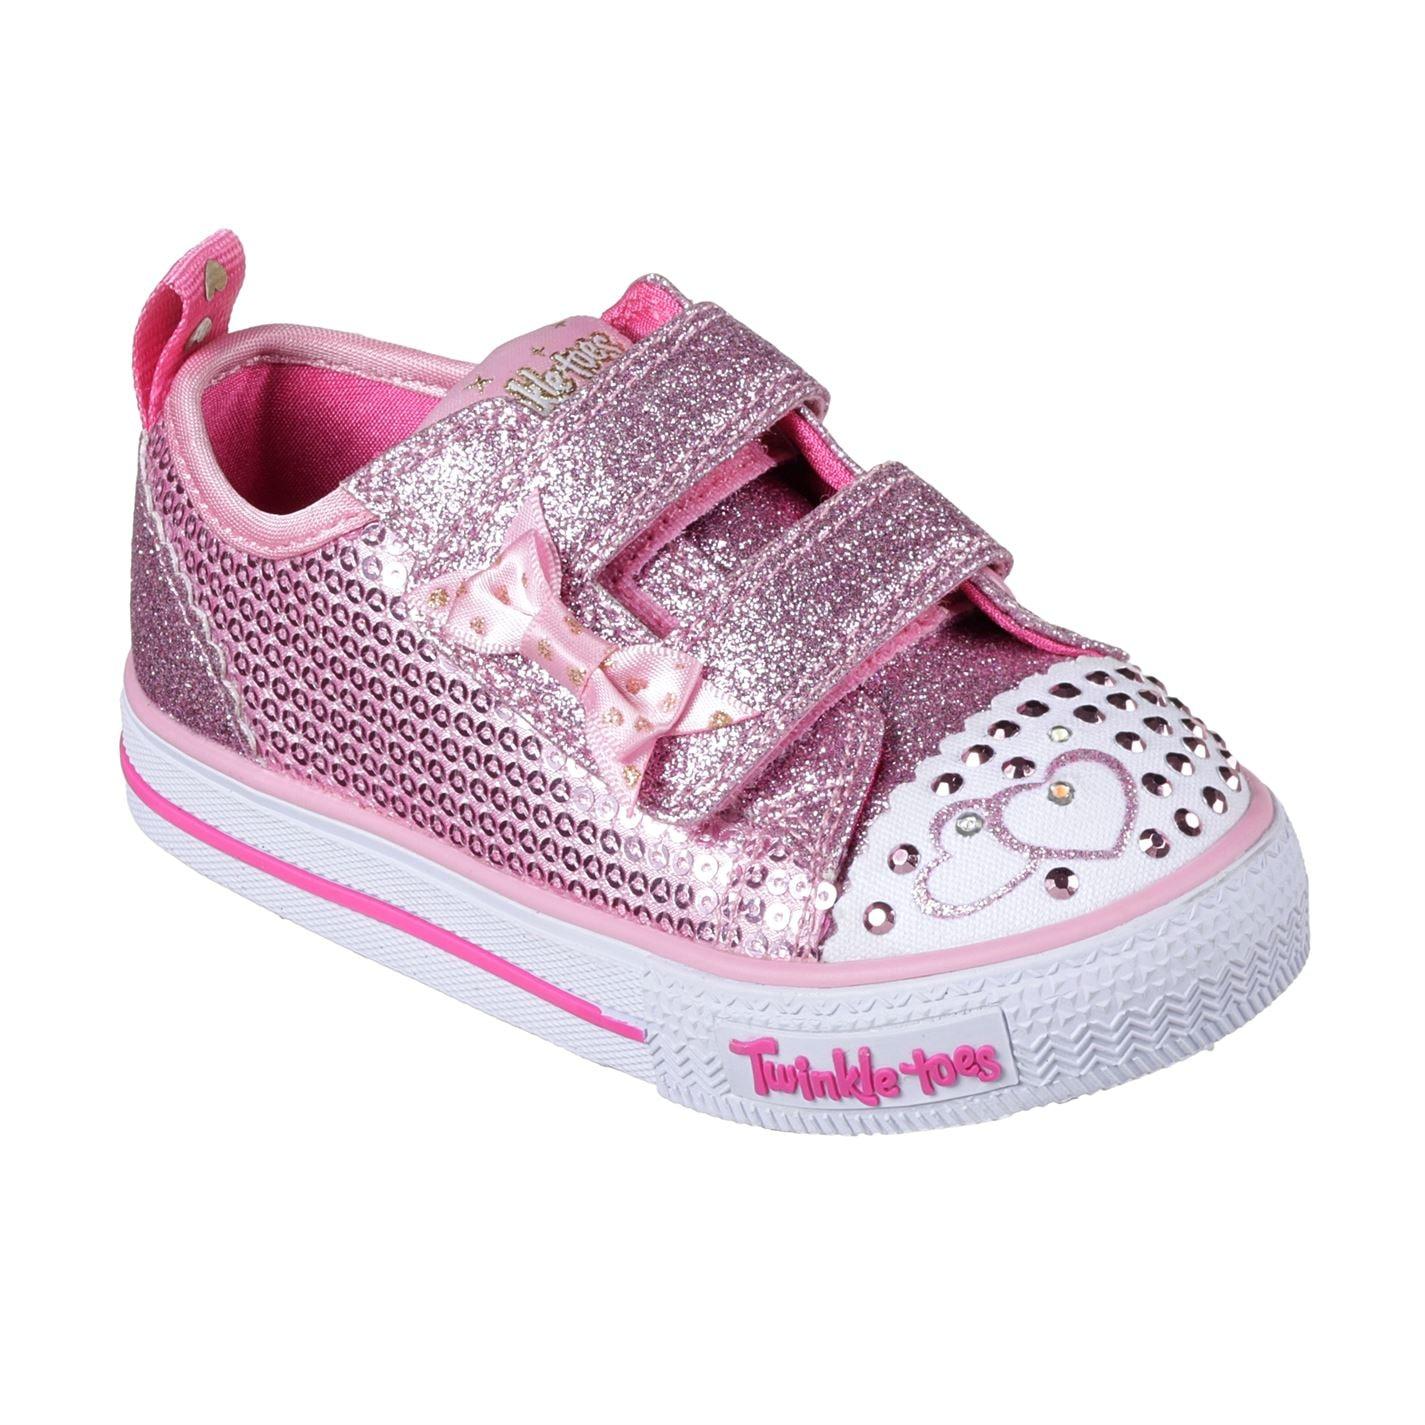 Skechers Twinkle Toes Itsy Bitsy Shoes Infant Girls Pink